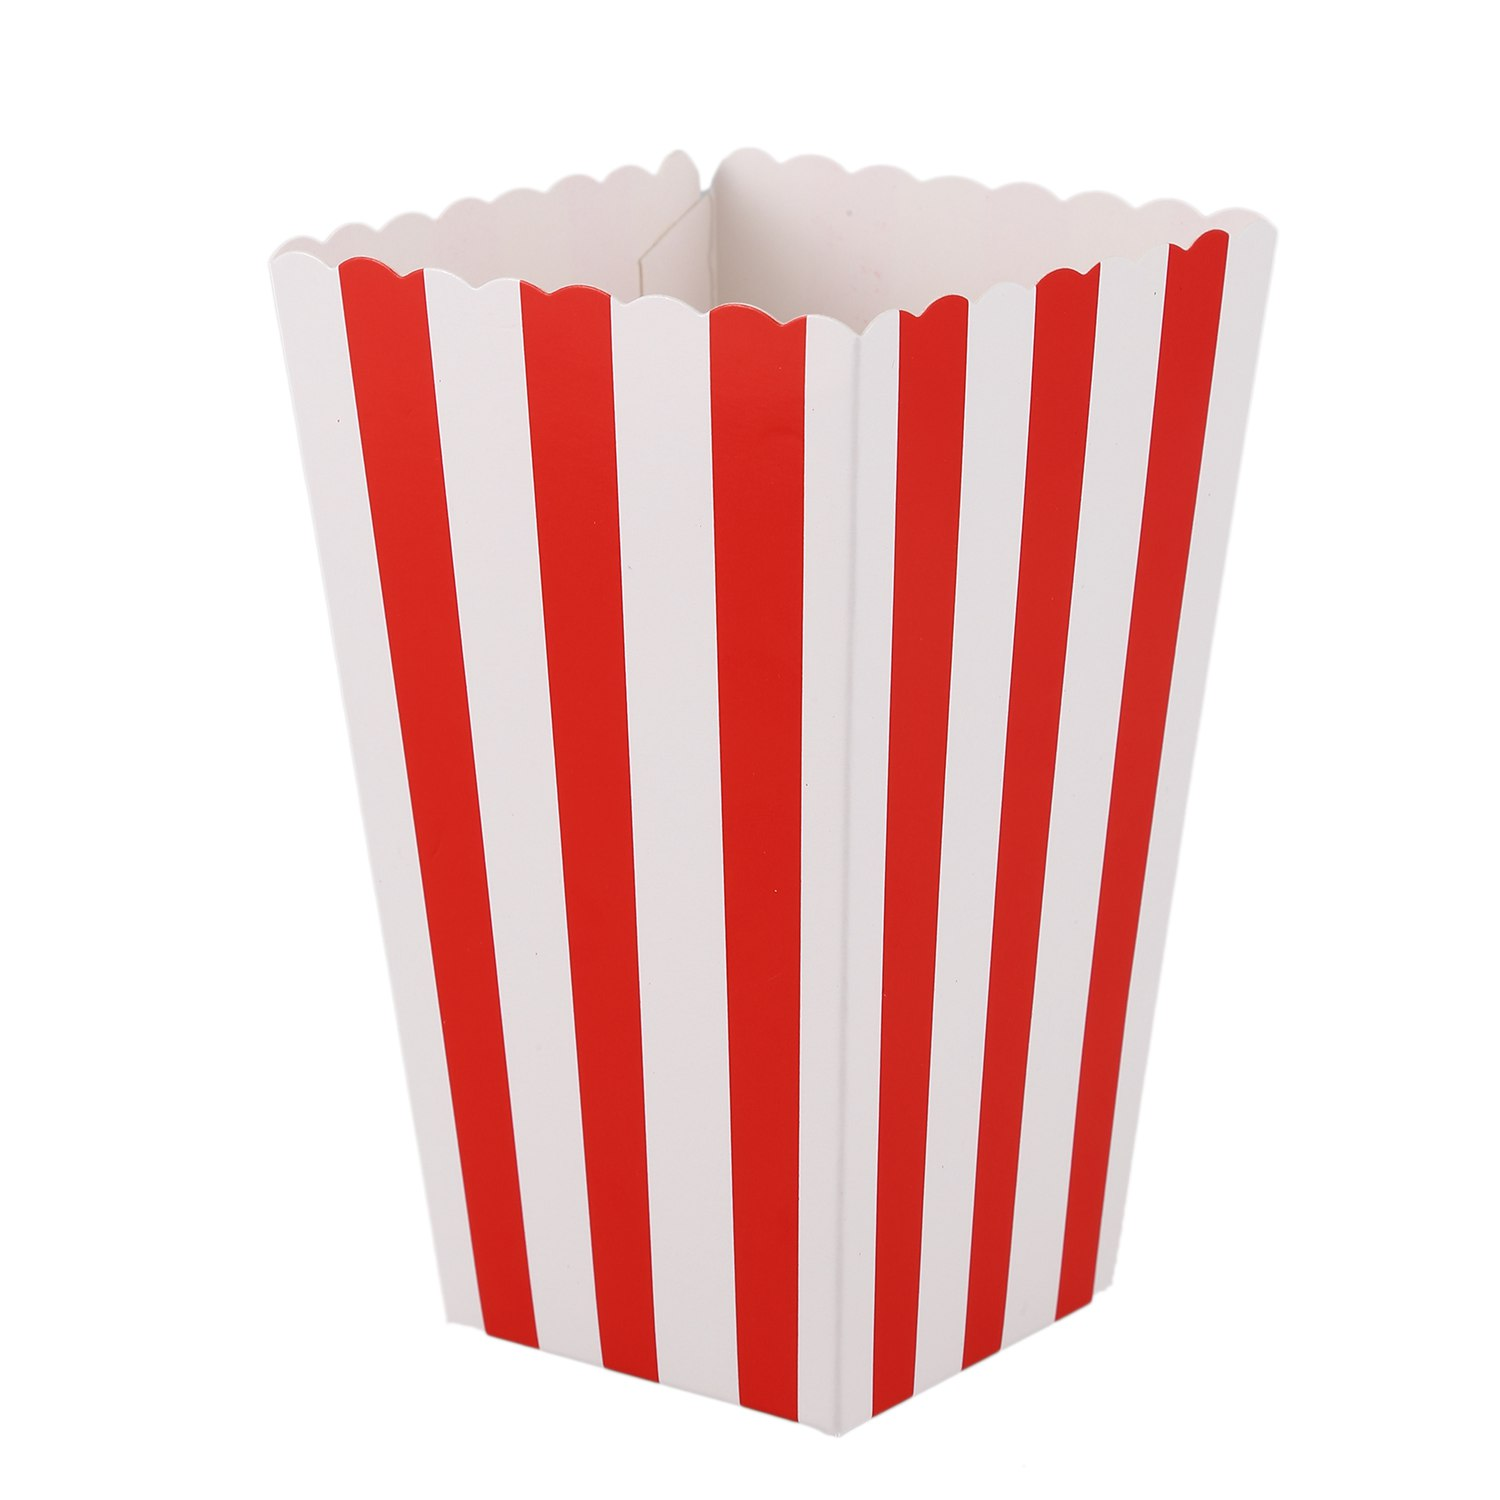 Us 2 71 25 Off Snny 12 Cinema Stripes Treat Party Small Candy Favour Popcorn Bags Bo Red In Gift Wring Supplies From Home Garden On